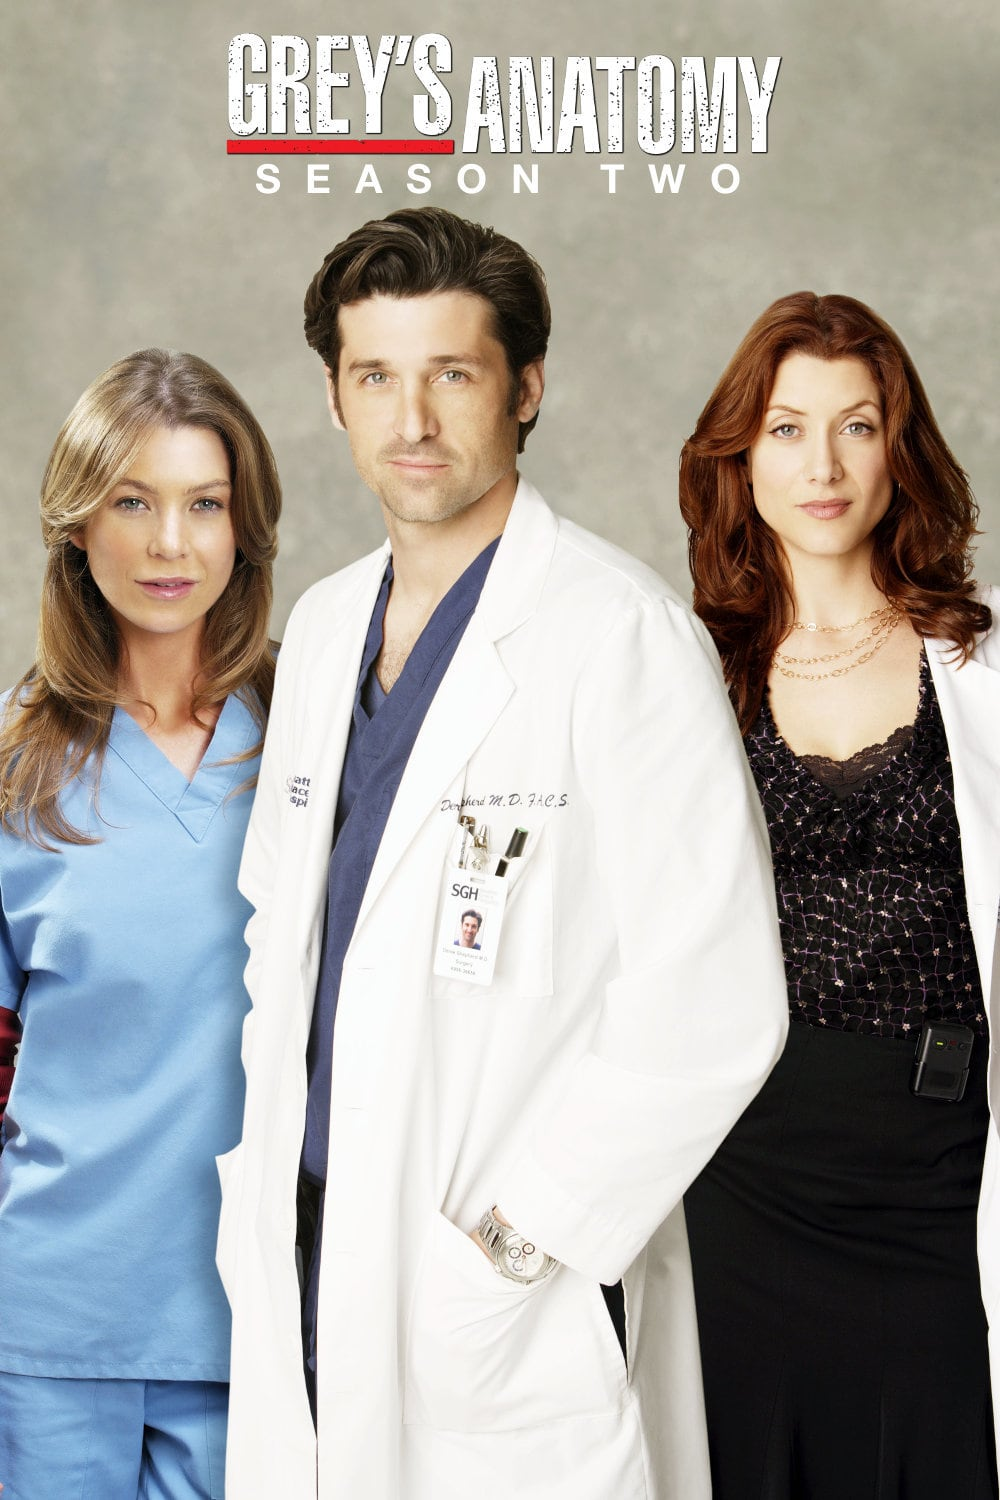 Stream GreyS Anatomy